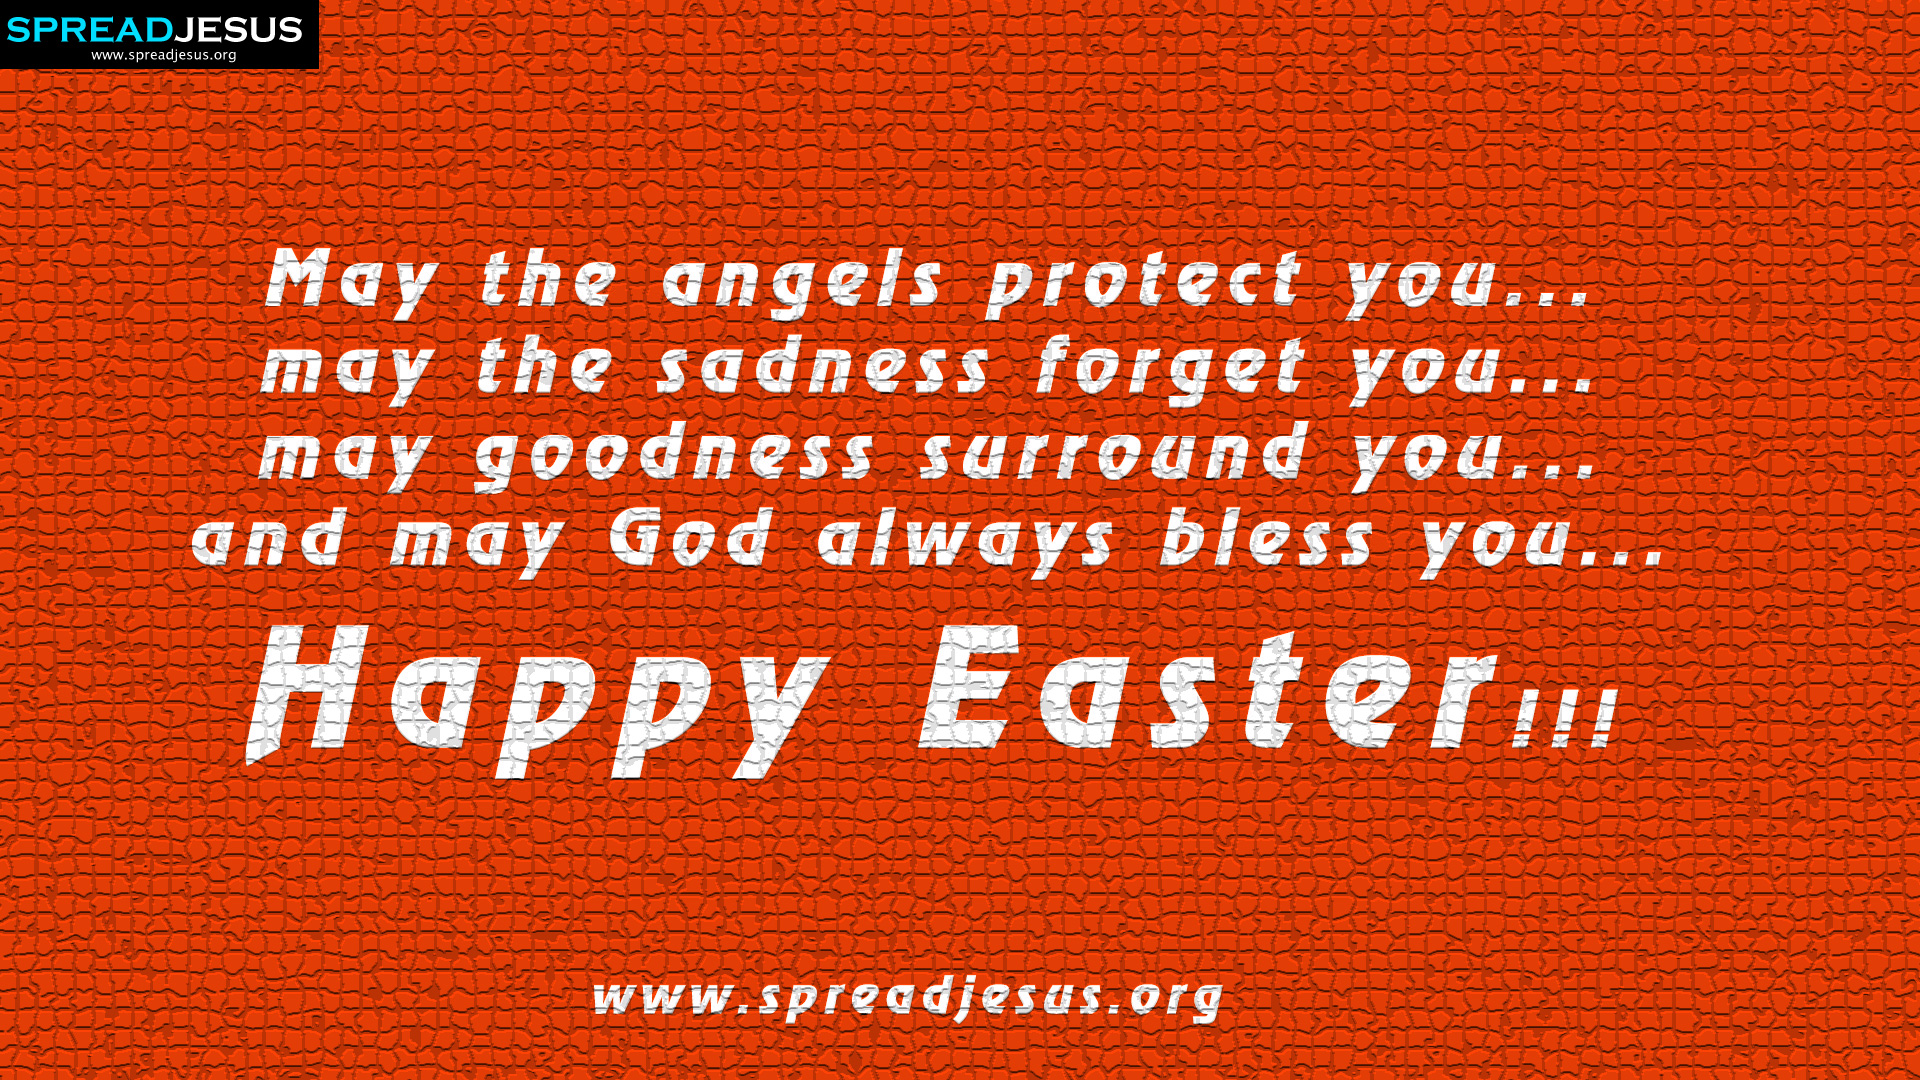 Happy Easter Easter Greetings Hd Wallpapers May The Angels